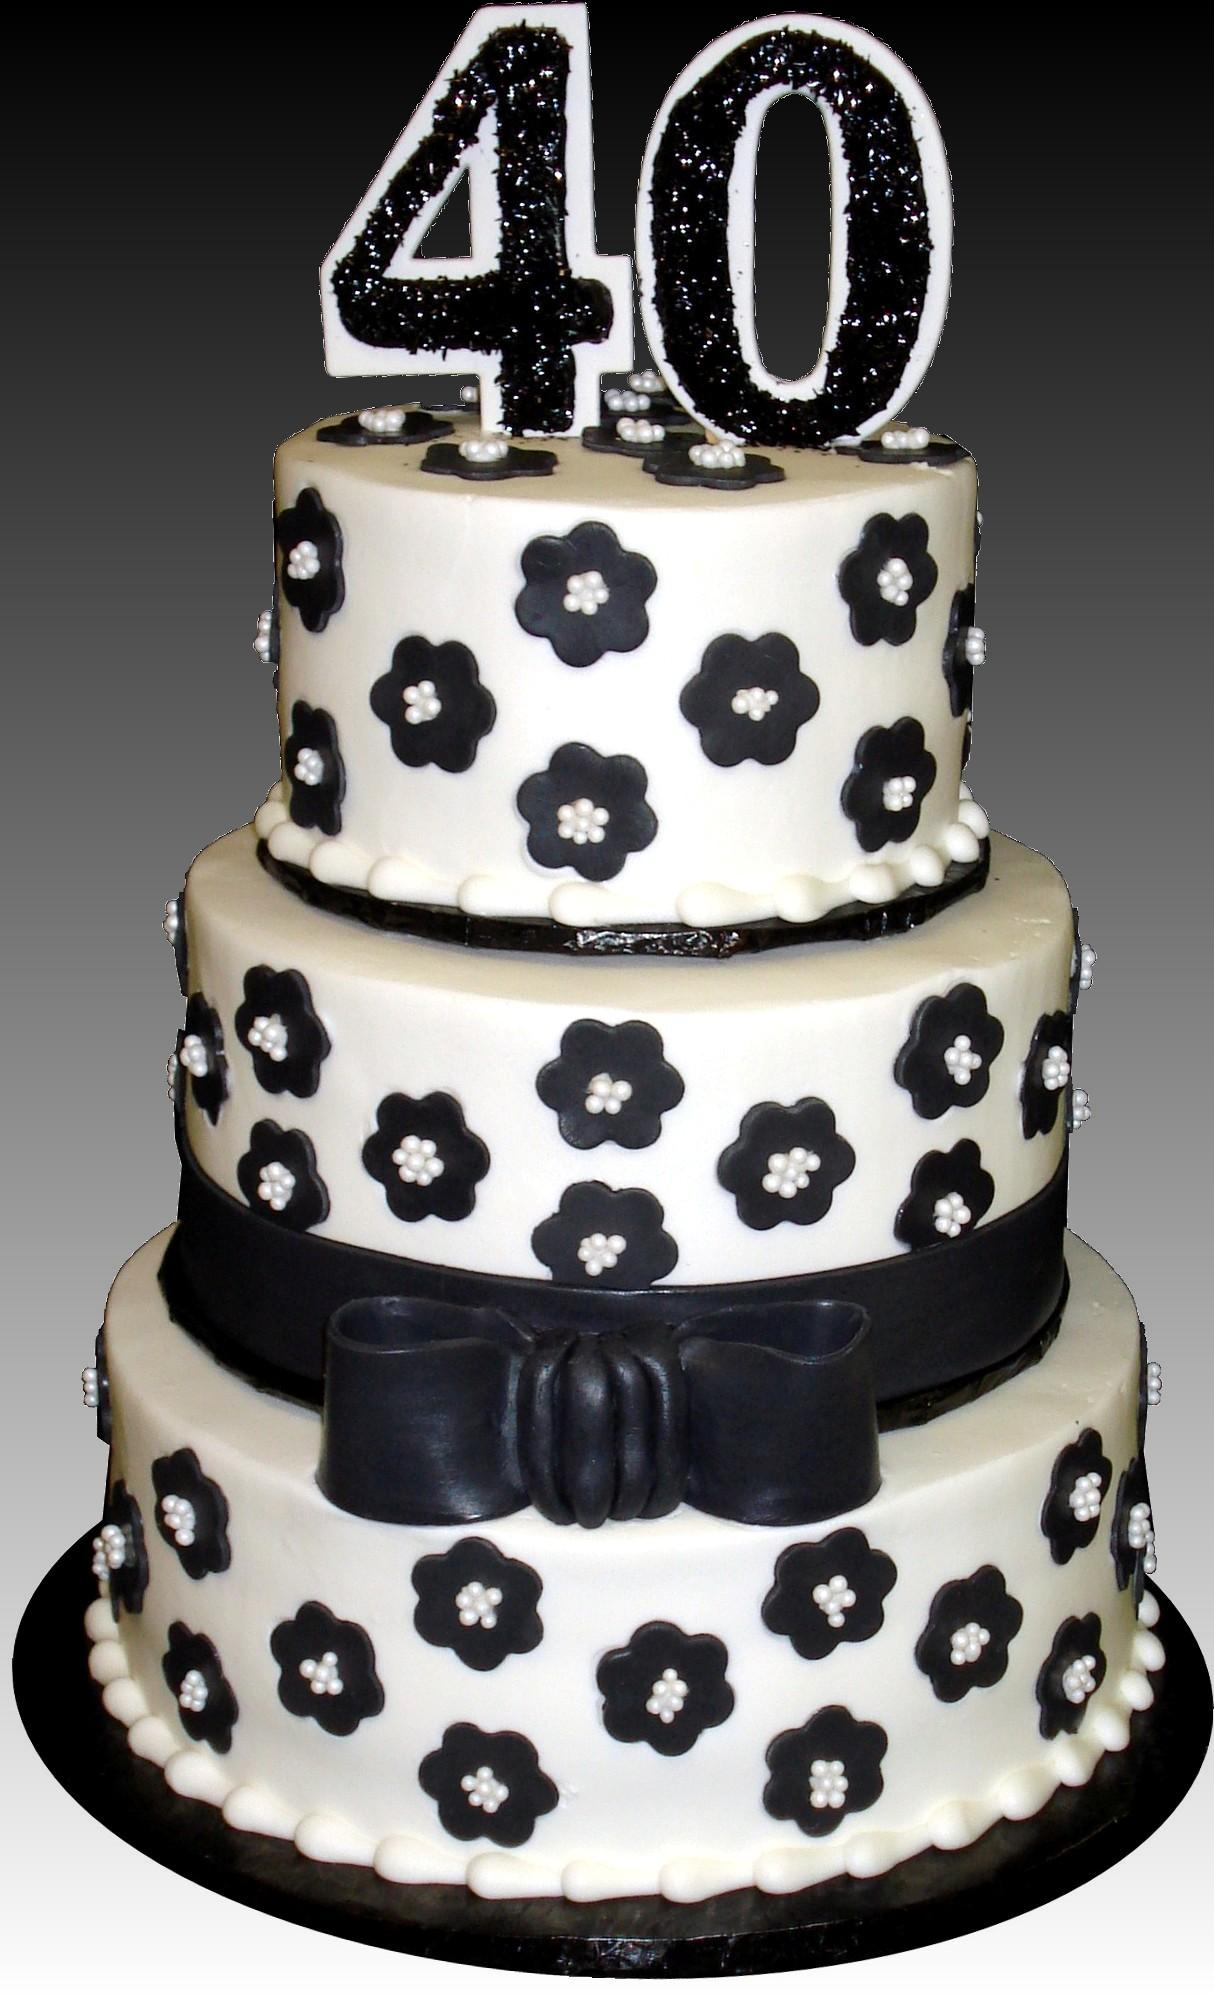 Black Flowers White Pearls 40th Birthday Cake Buttercream Iced Round 3 Tiers